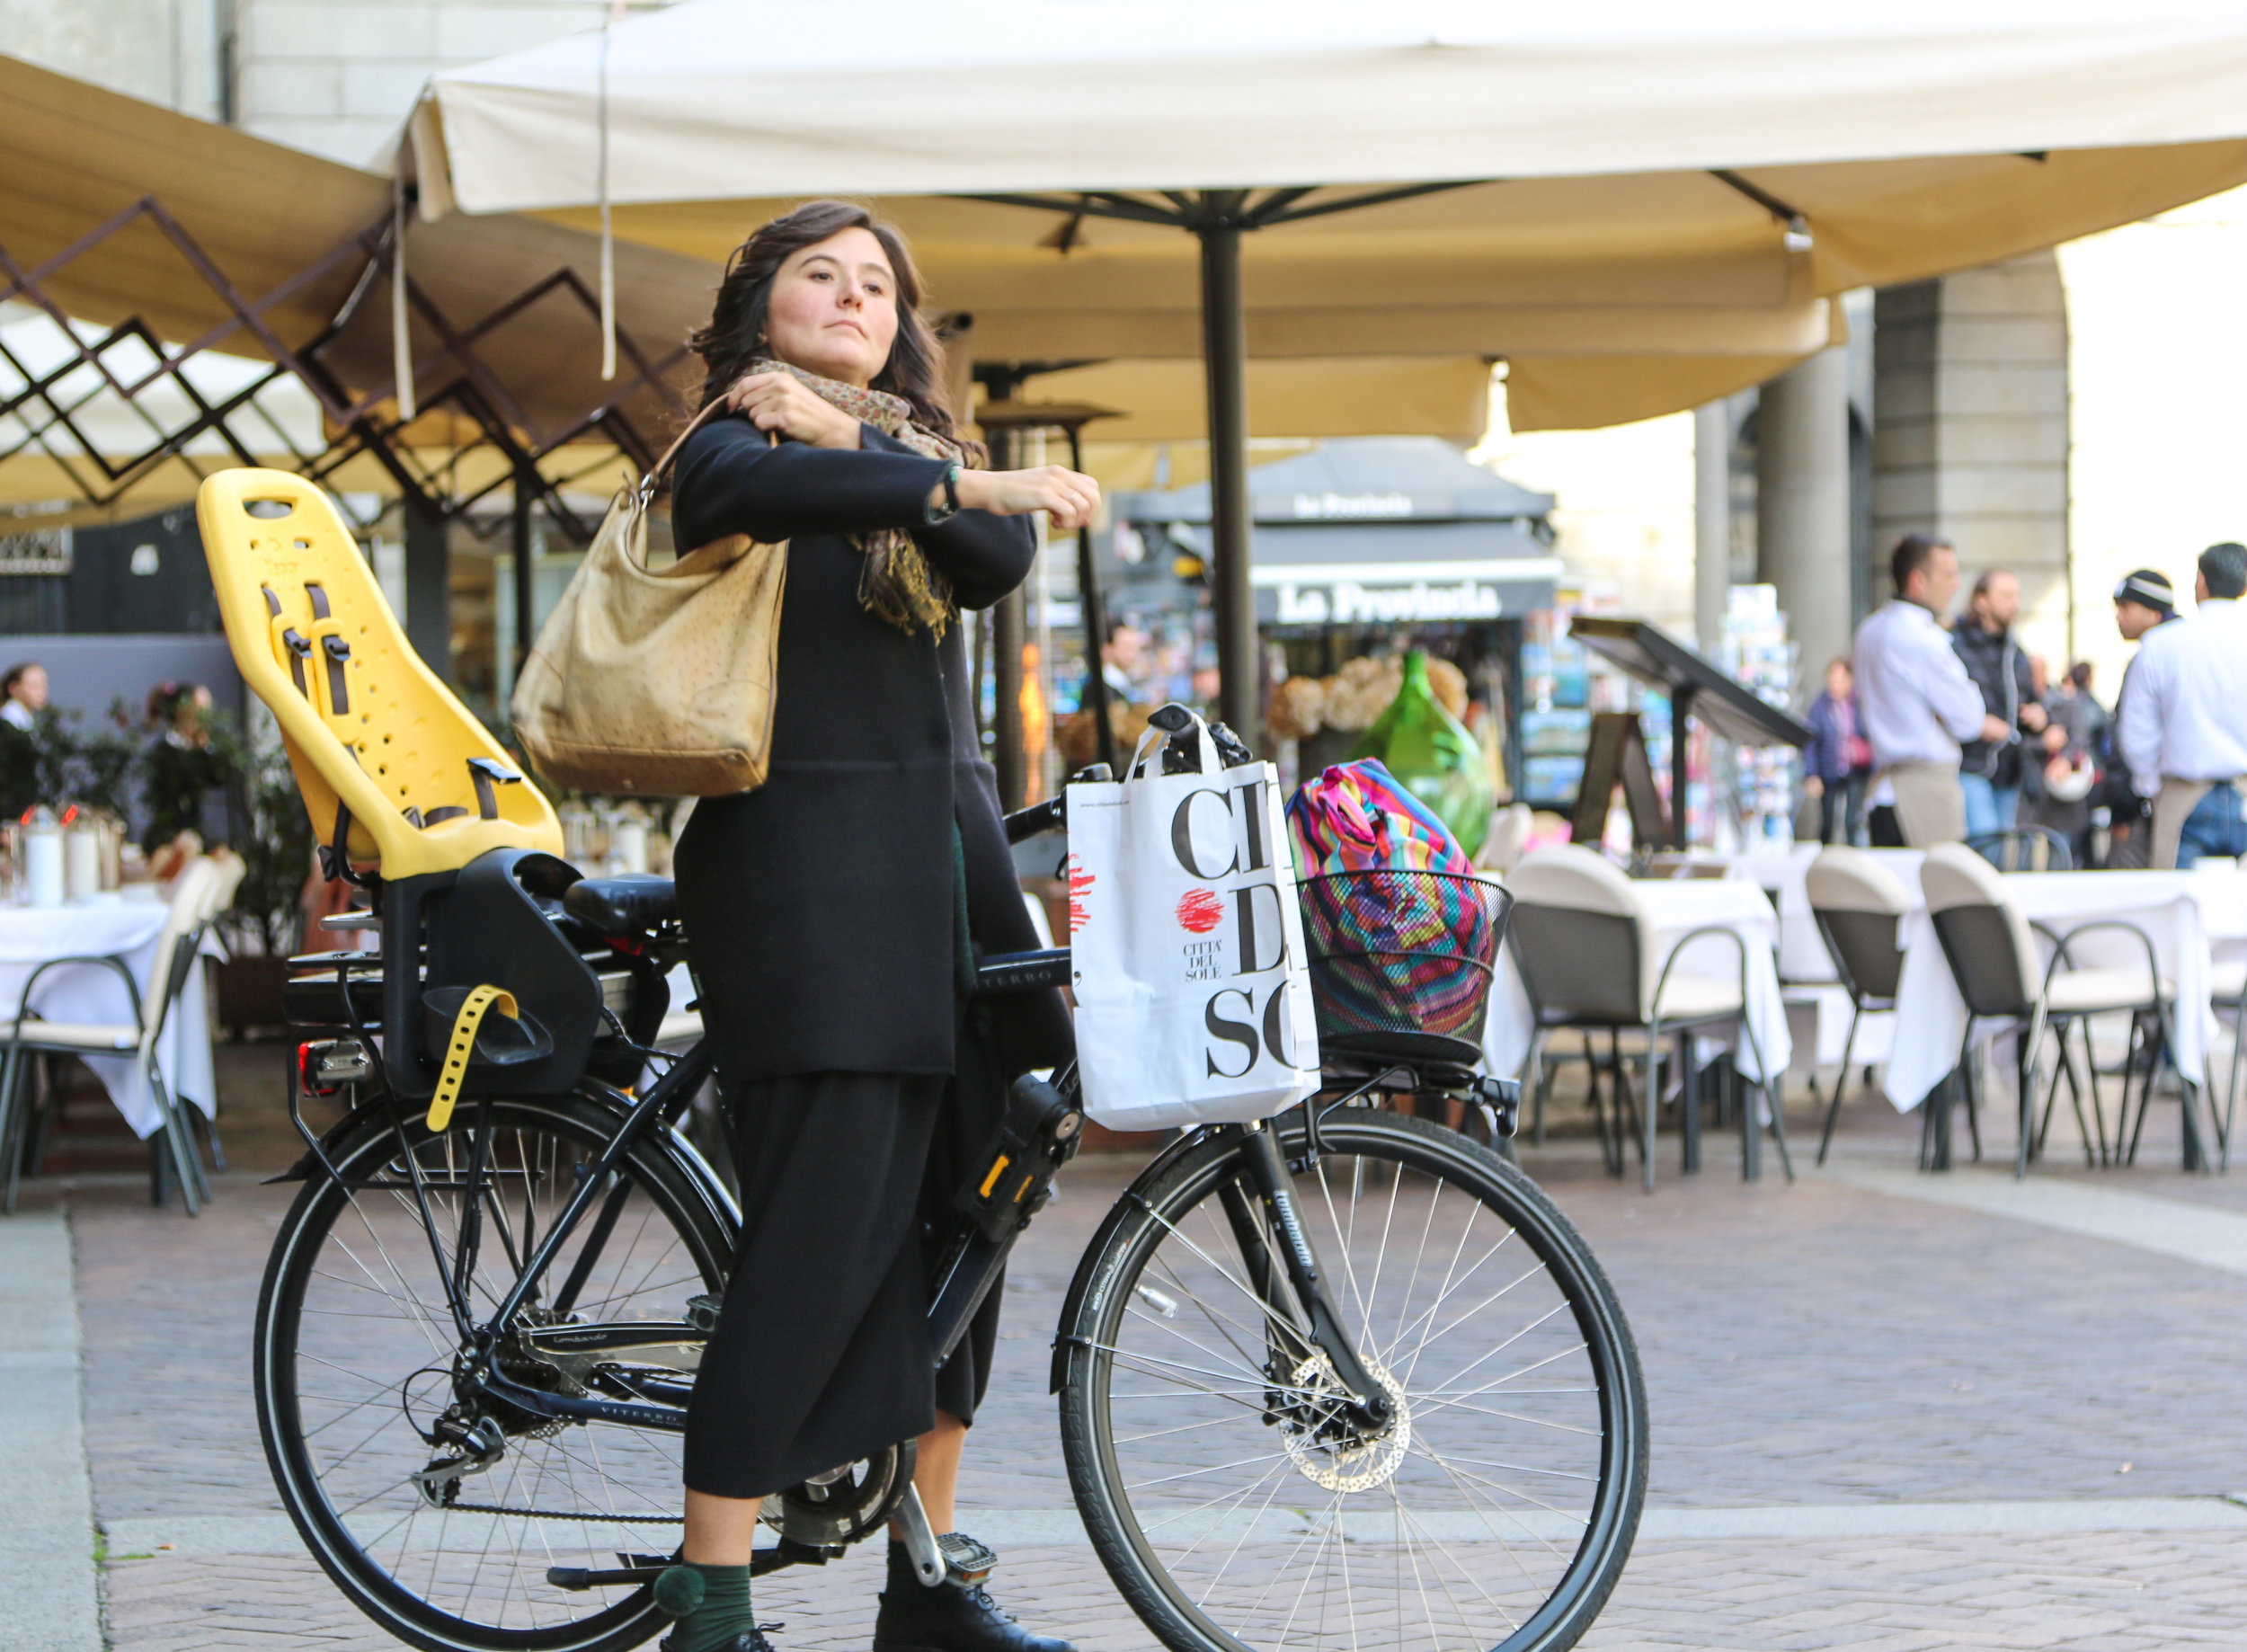 That Italian style, even while doing errands by bike.